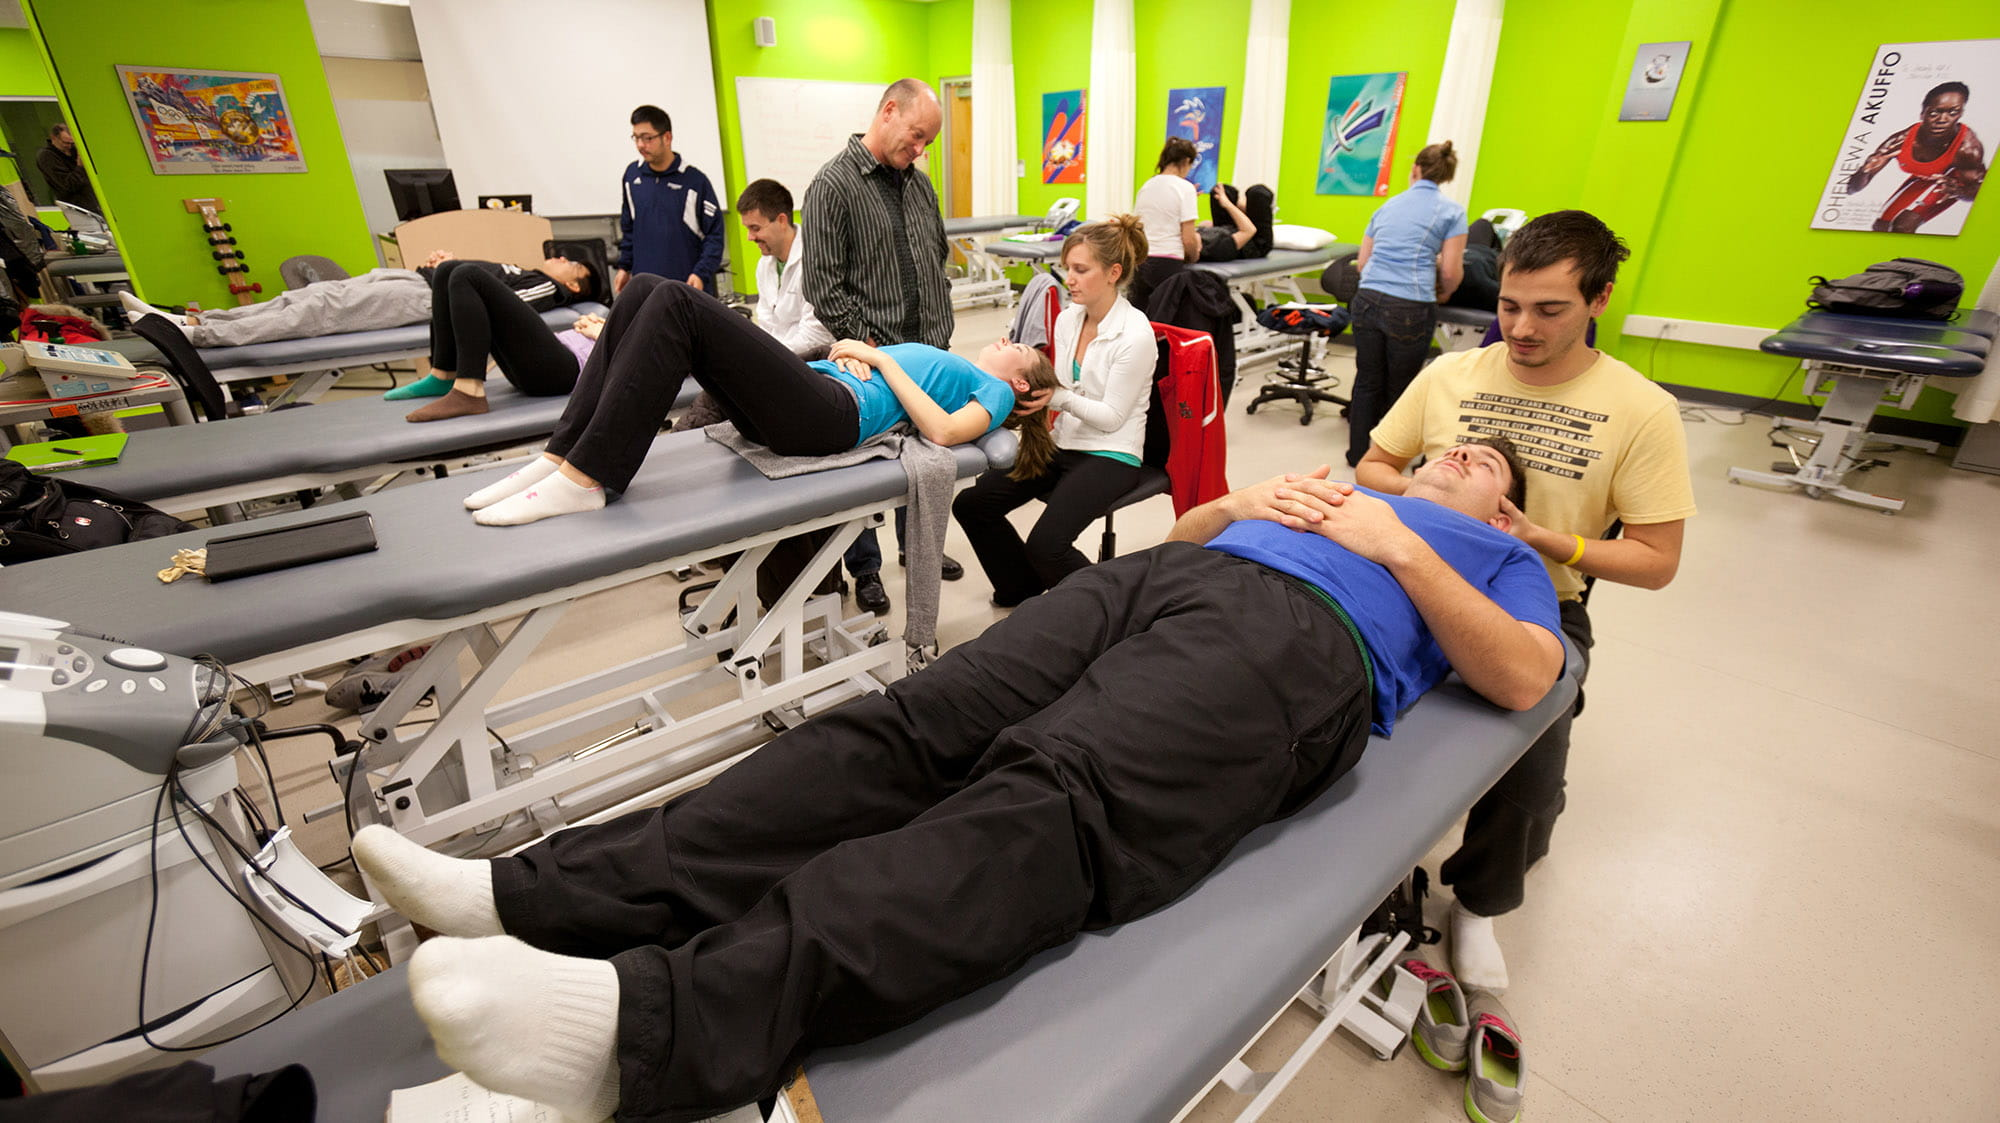 Athletic therapy room filled with therapy tables and students practicing on one another